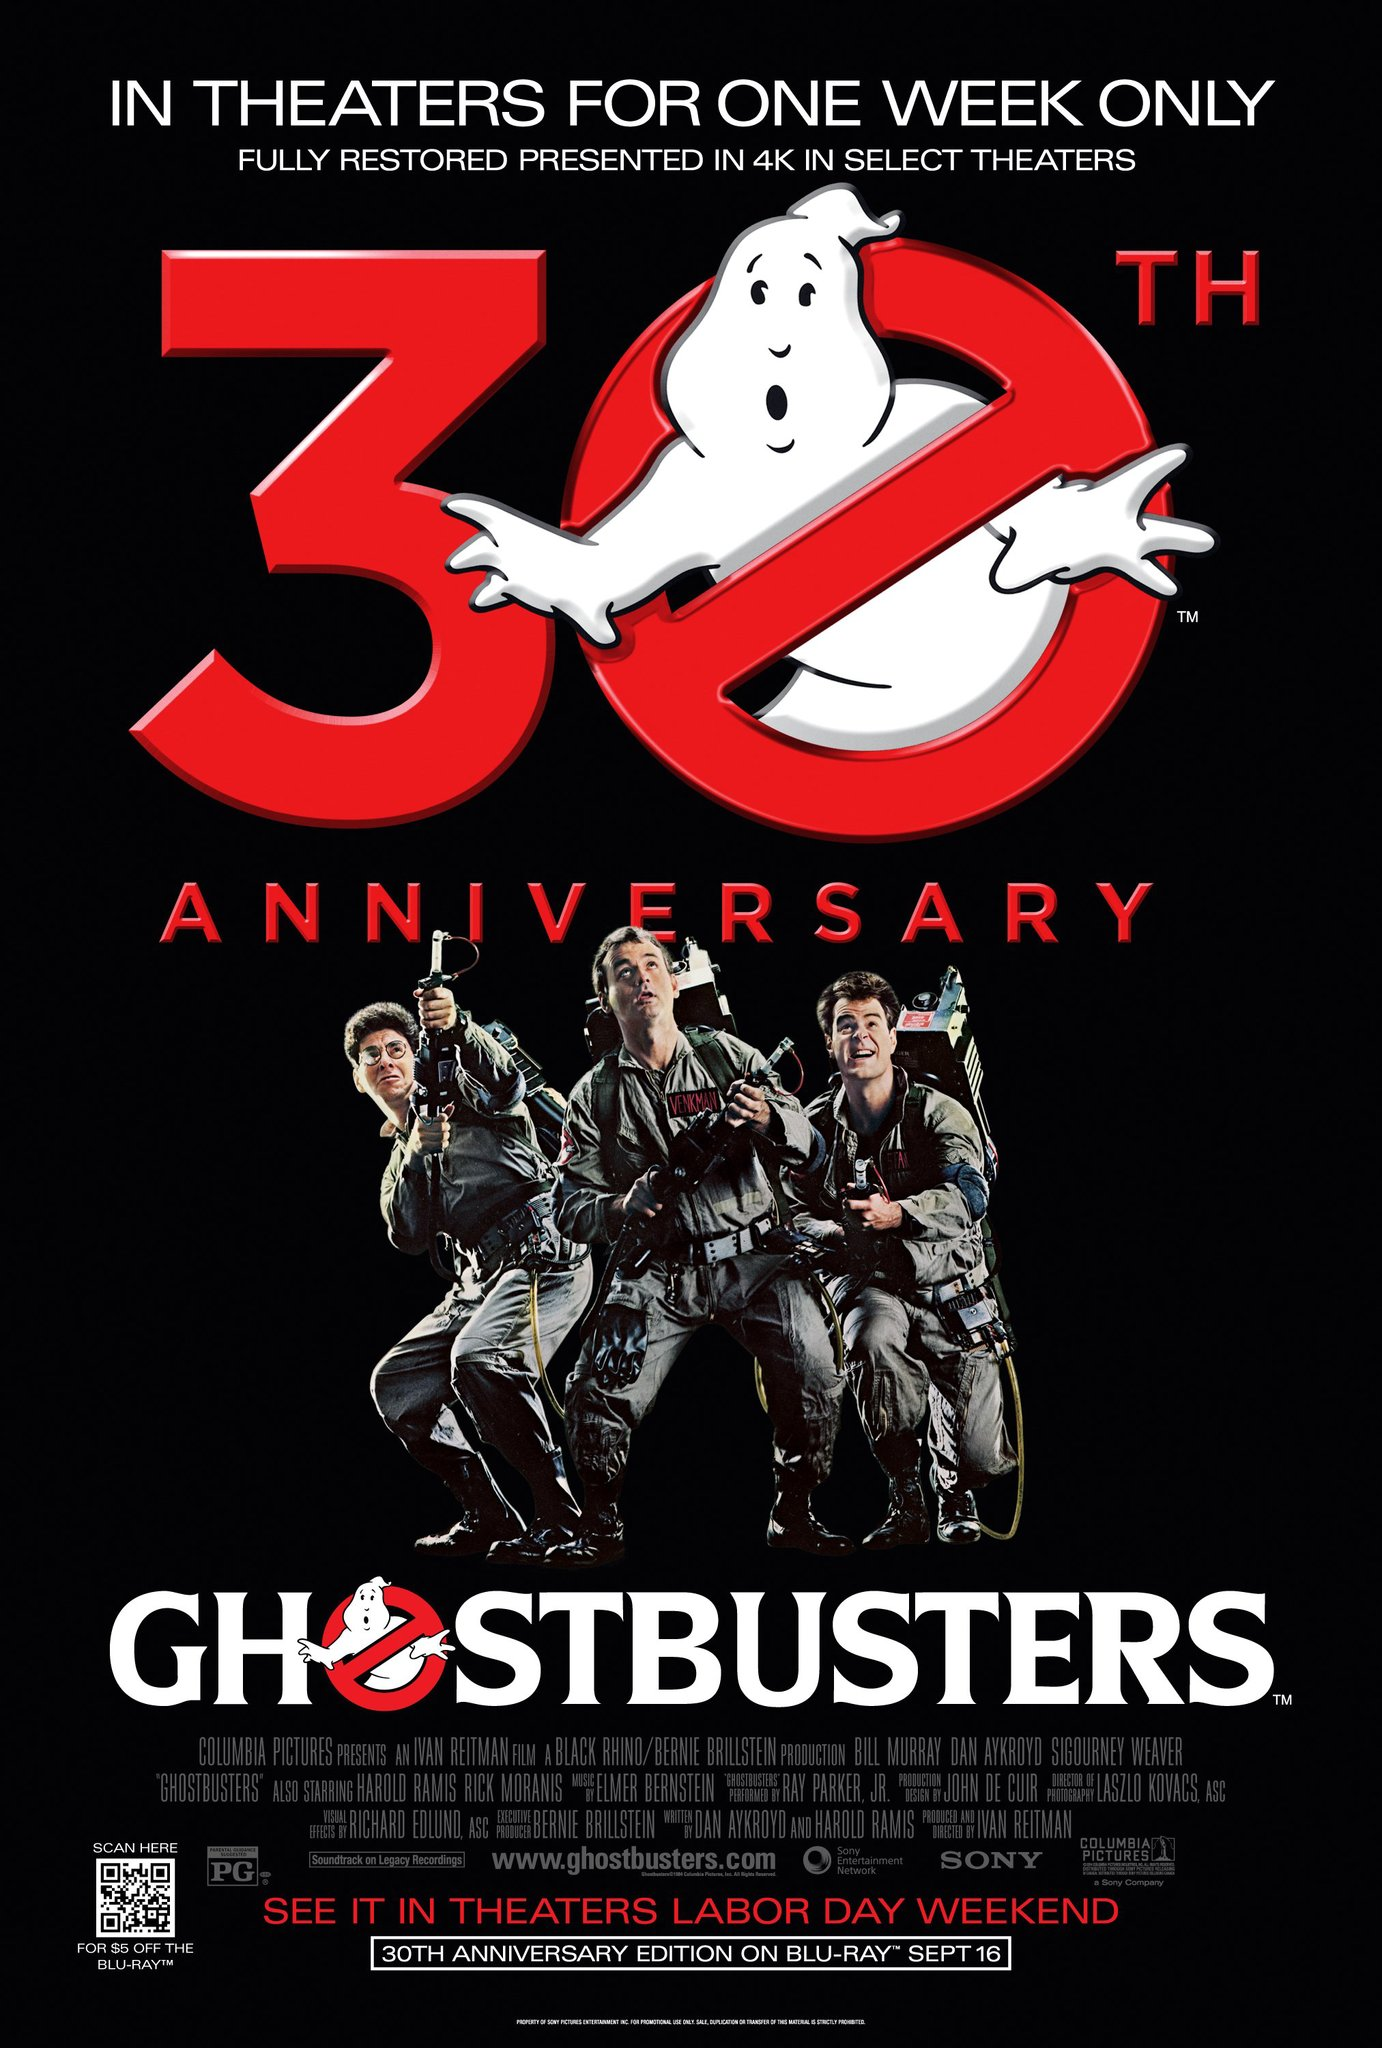 GHOSTBUSTERS Movie PHOTO Print POSTER Film Bill Murray Dan Aykroyd 1984 Art 001